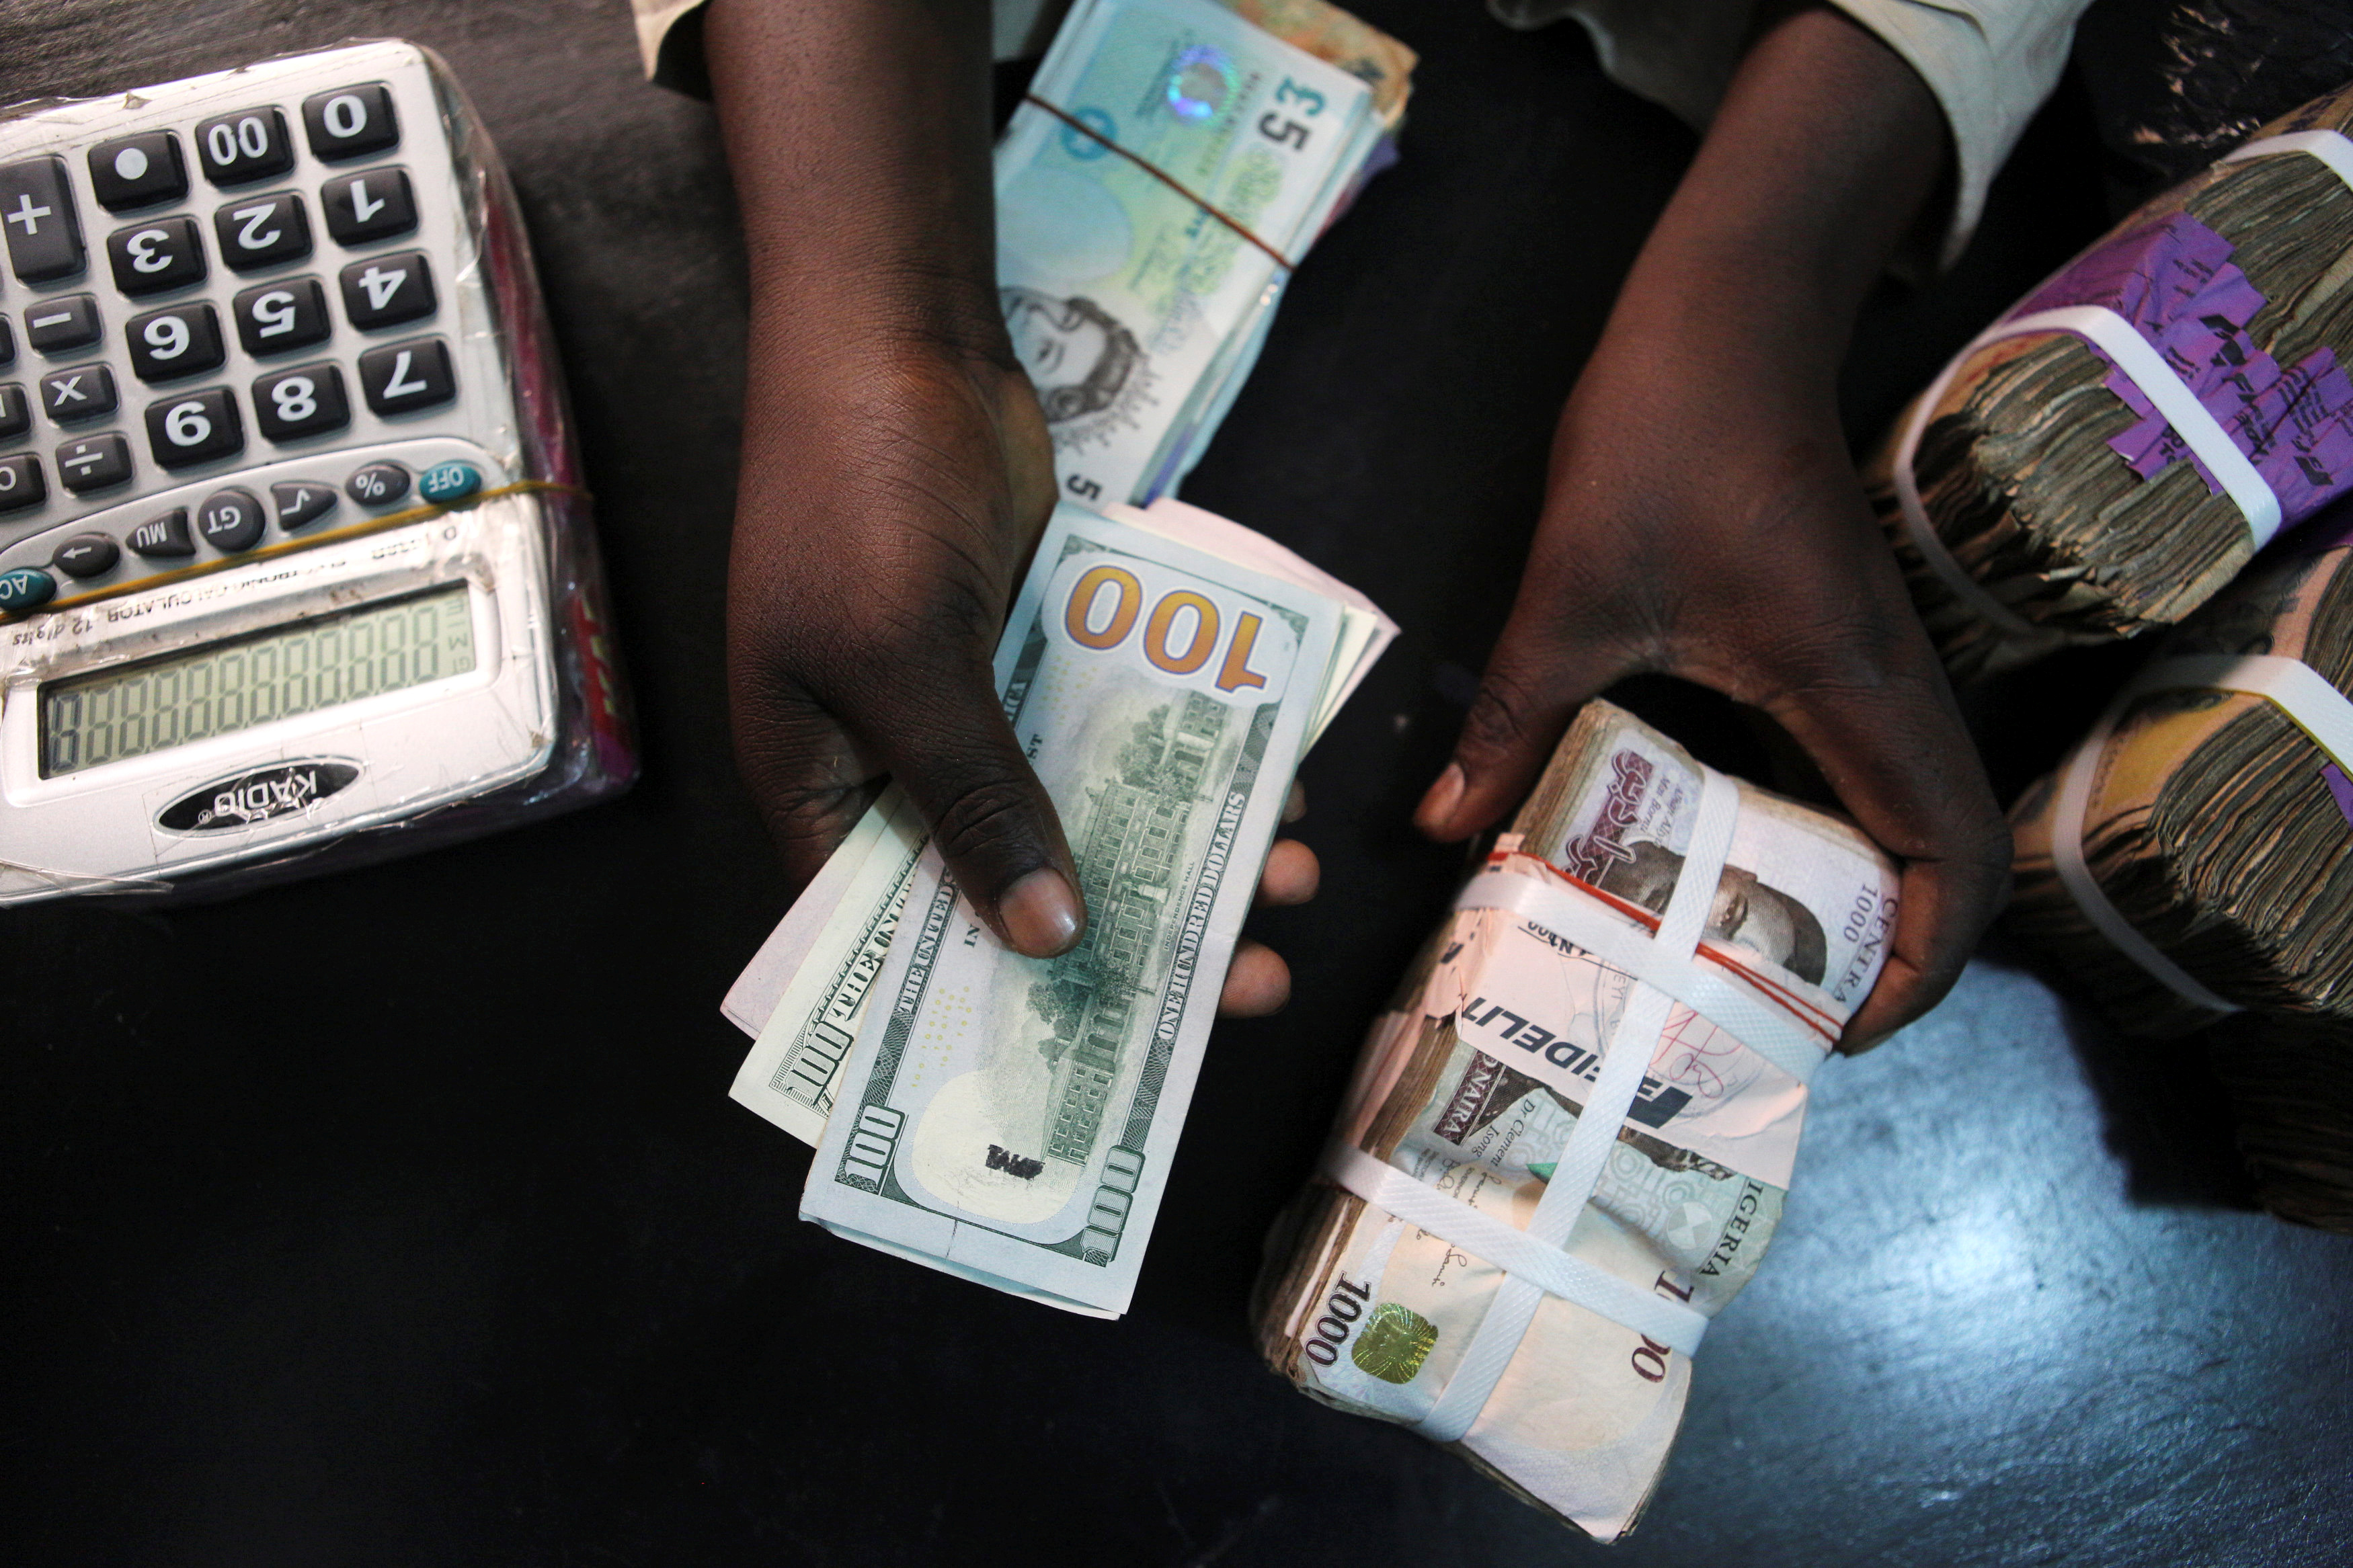 Moving The Naira To A Flexible Exchange Rate Must Be Accompanied By Strong Policies